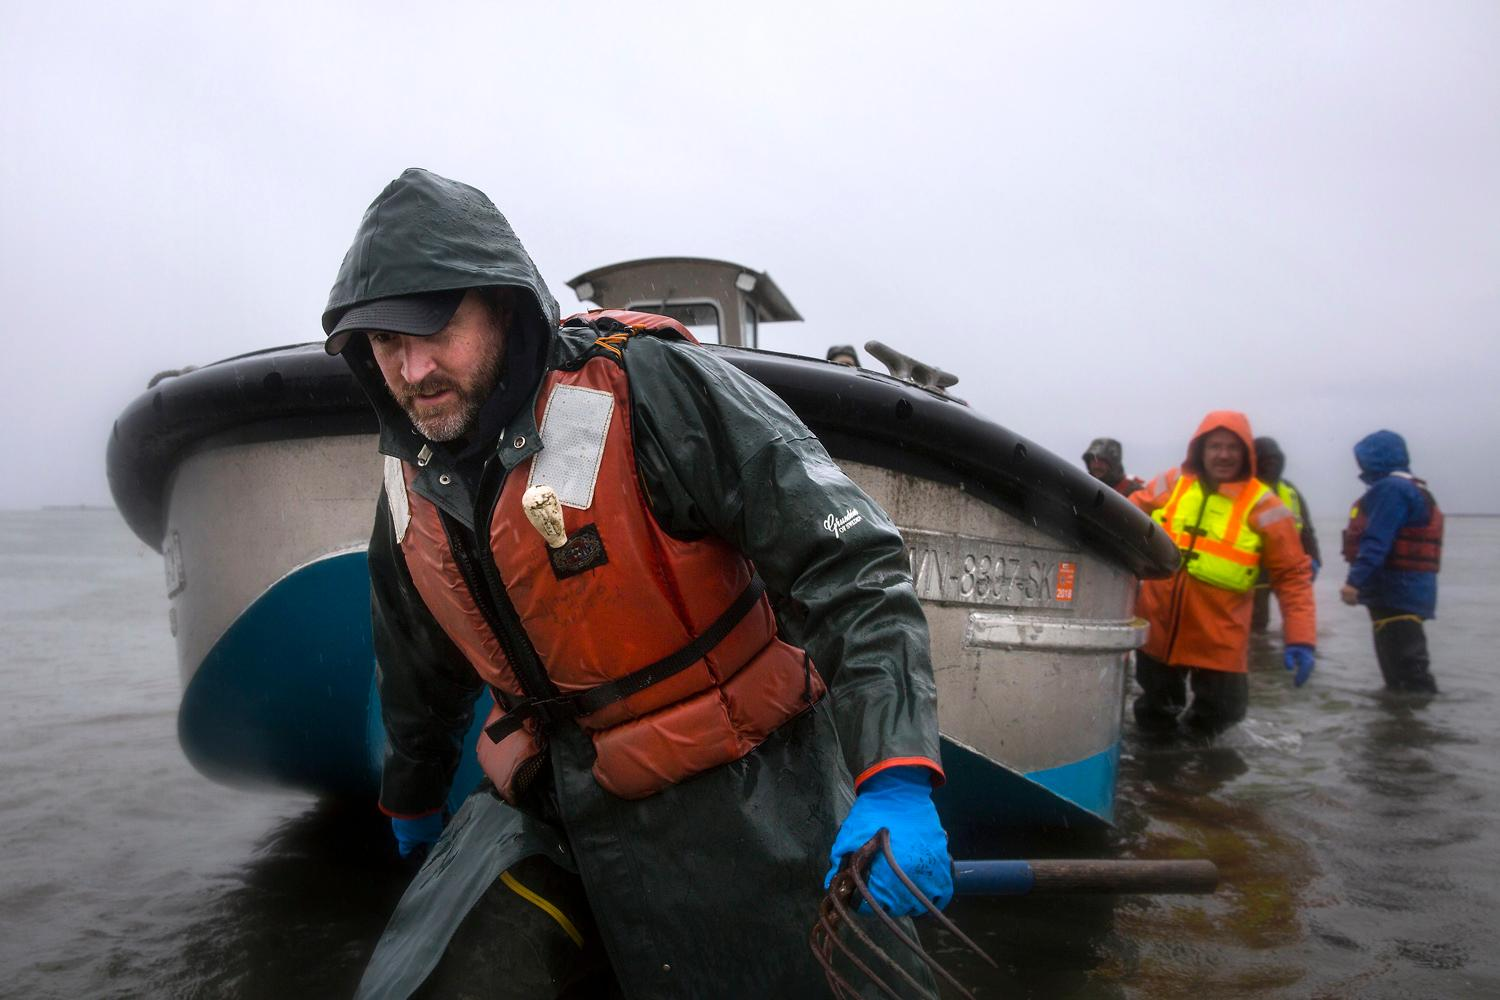 Jason Ragan, director of clam and oyster farming at Taylor Shellfish Farms, pulls a boat to shore to take workers on a tour of their Samish Bay farms, Thursday, March 22, 2018, near Bellingham. Taylor Shellfish Farms has its roots in shellfish farming in Washington State since the 1890s. You can try the tasty oysters at one of their oyster bars located in Queen Anne, Capitol Hill, Pioneer Square, or Bellevue. (Sy Bean / Seattle Refined)